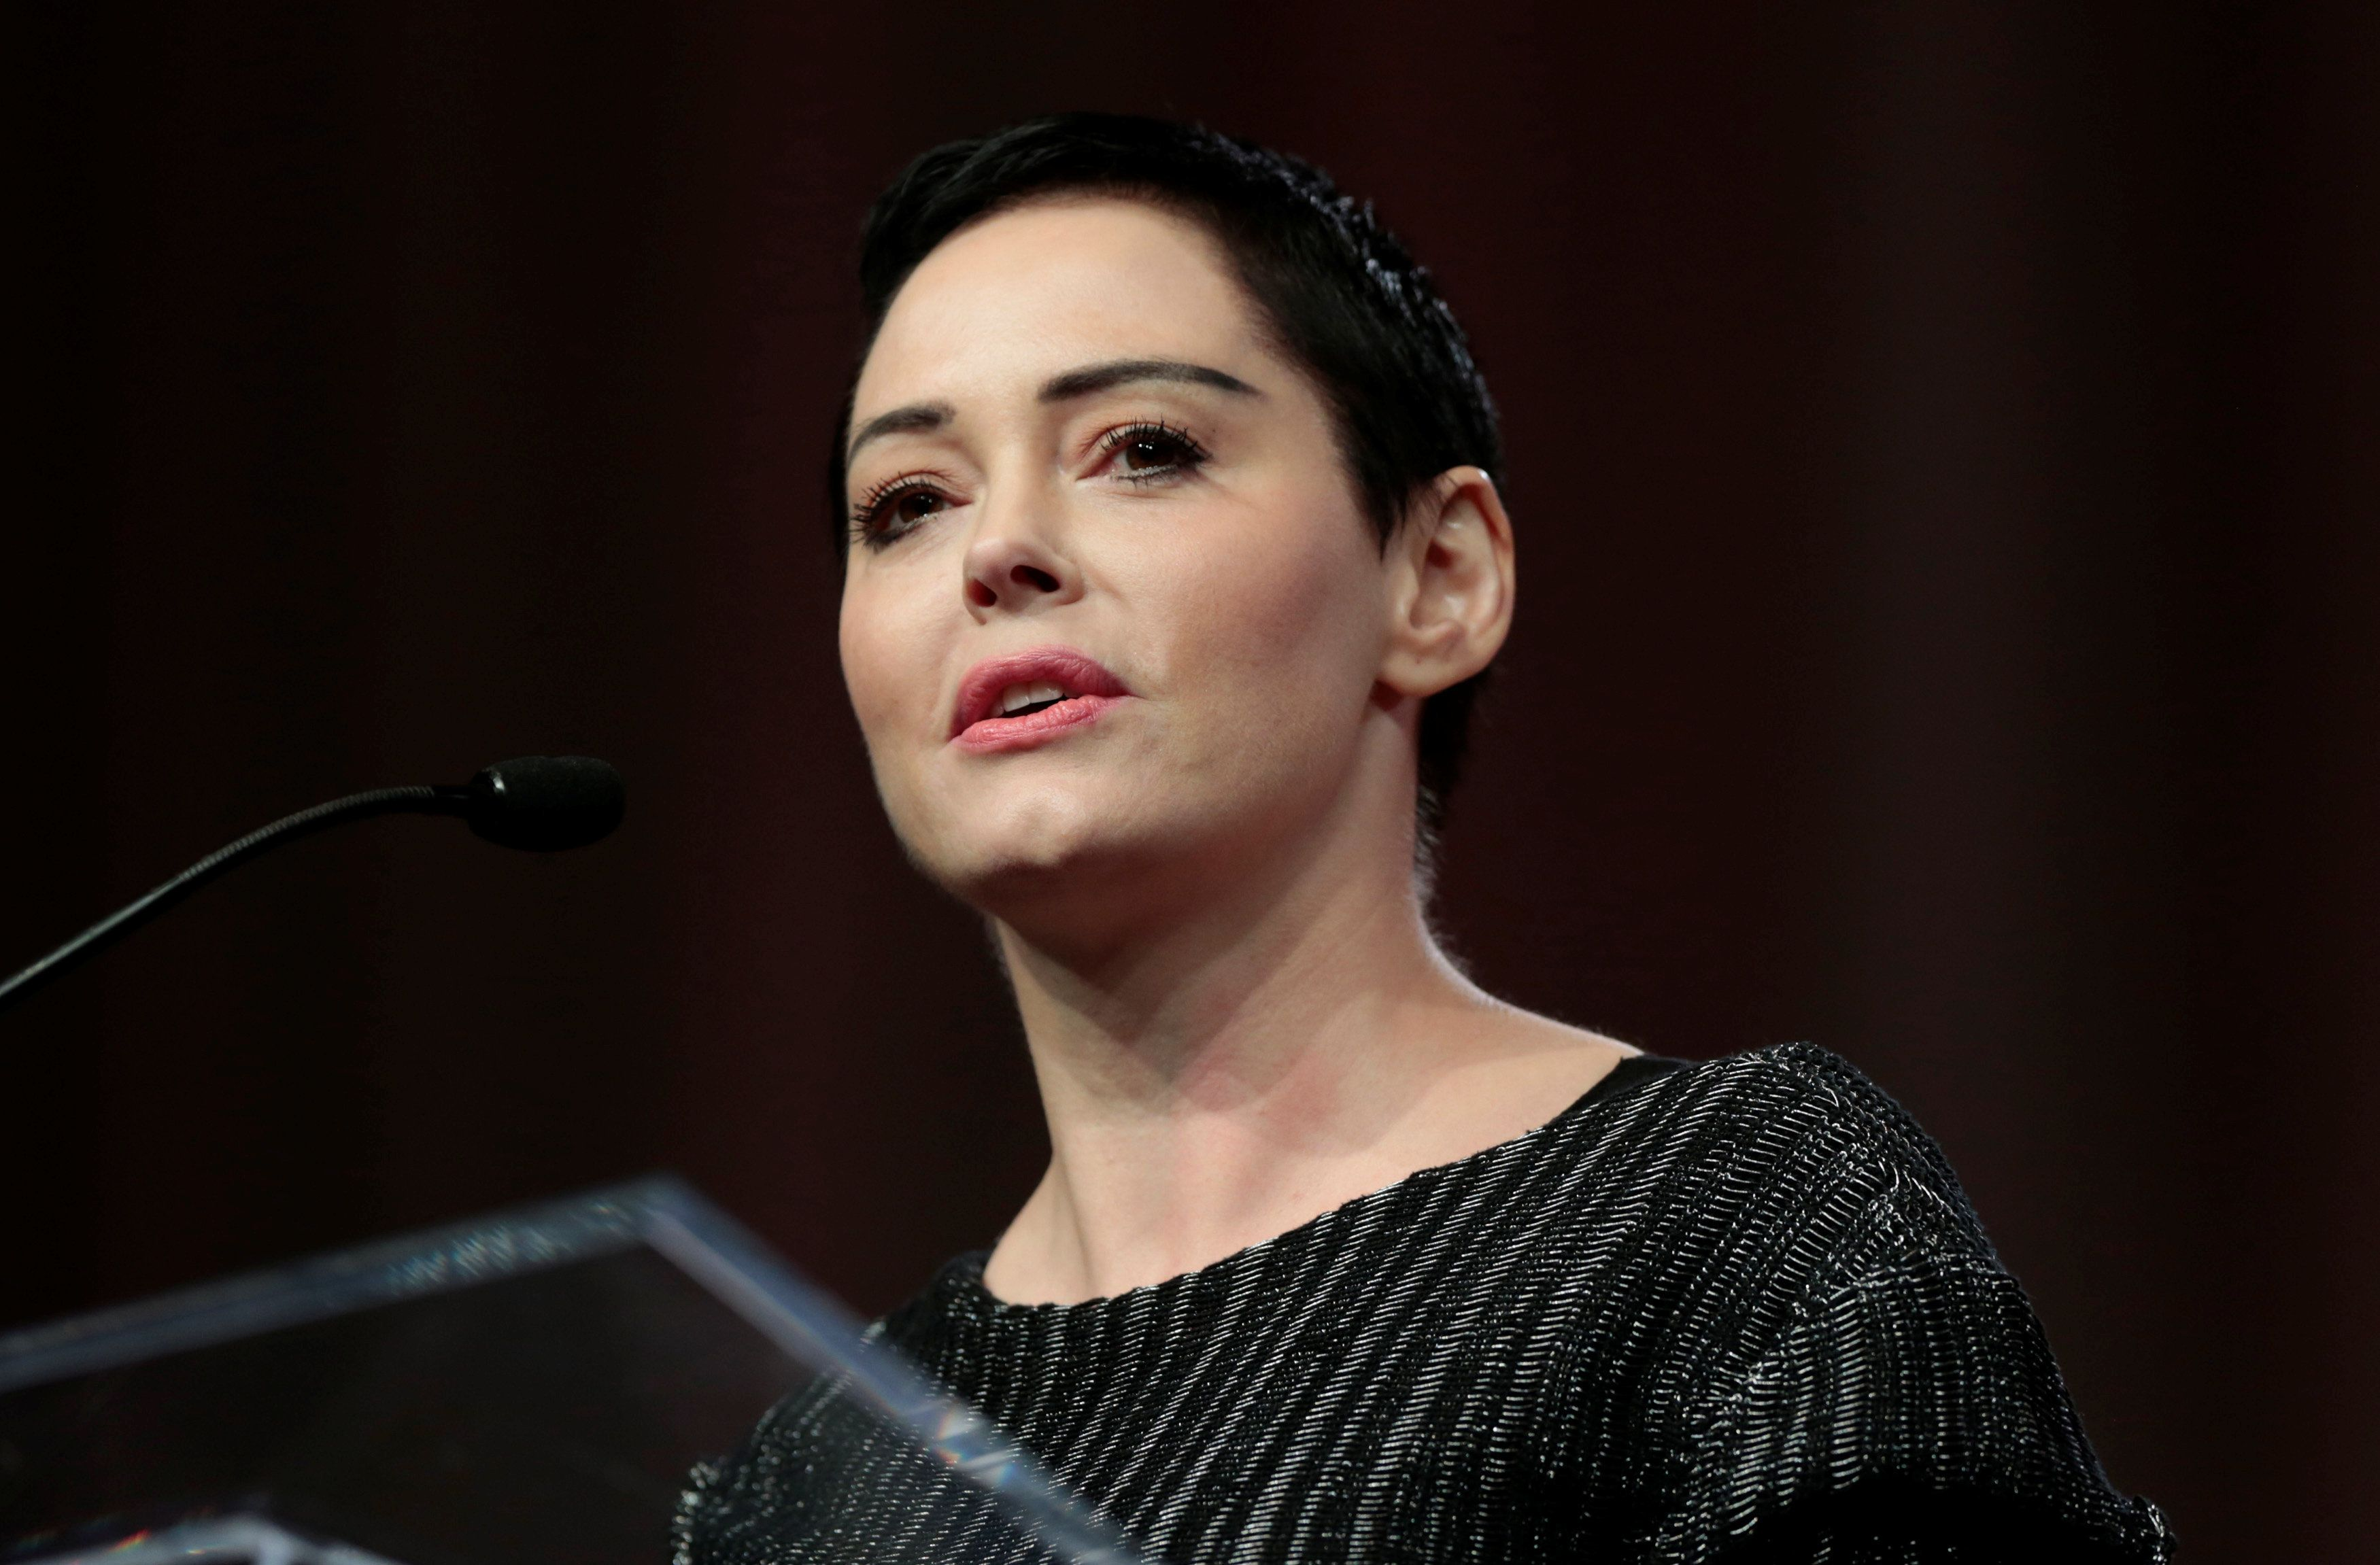 Rose McGowan Drug Possession Case To Be Heard By Grand